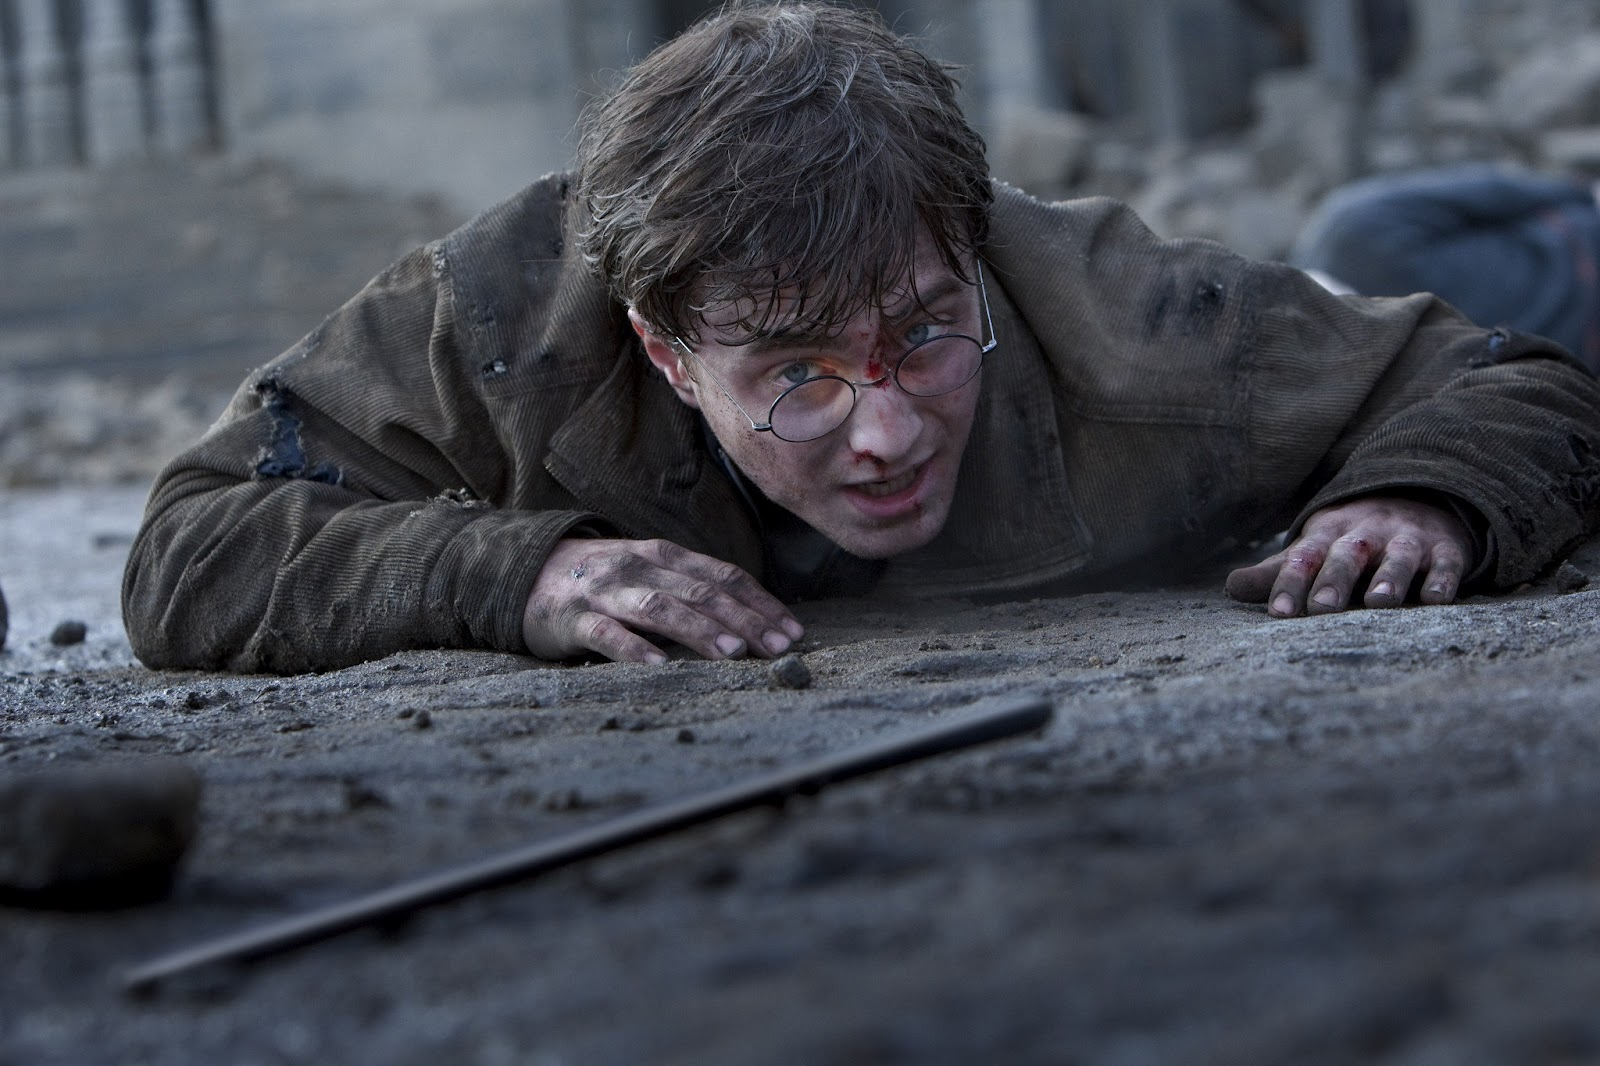 Daniel Radcliffe Harry Potter And The Deathly Hallows Part 2 MoviE Picture: Harry P...